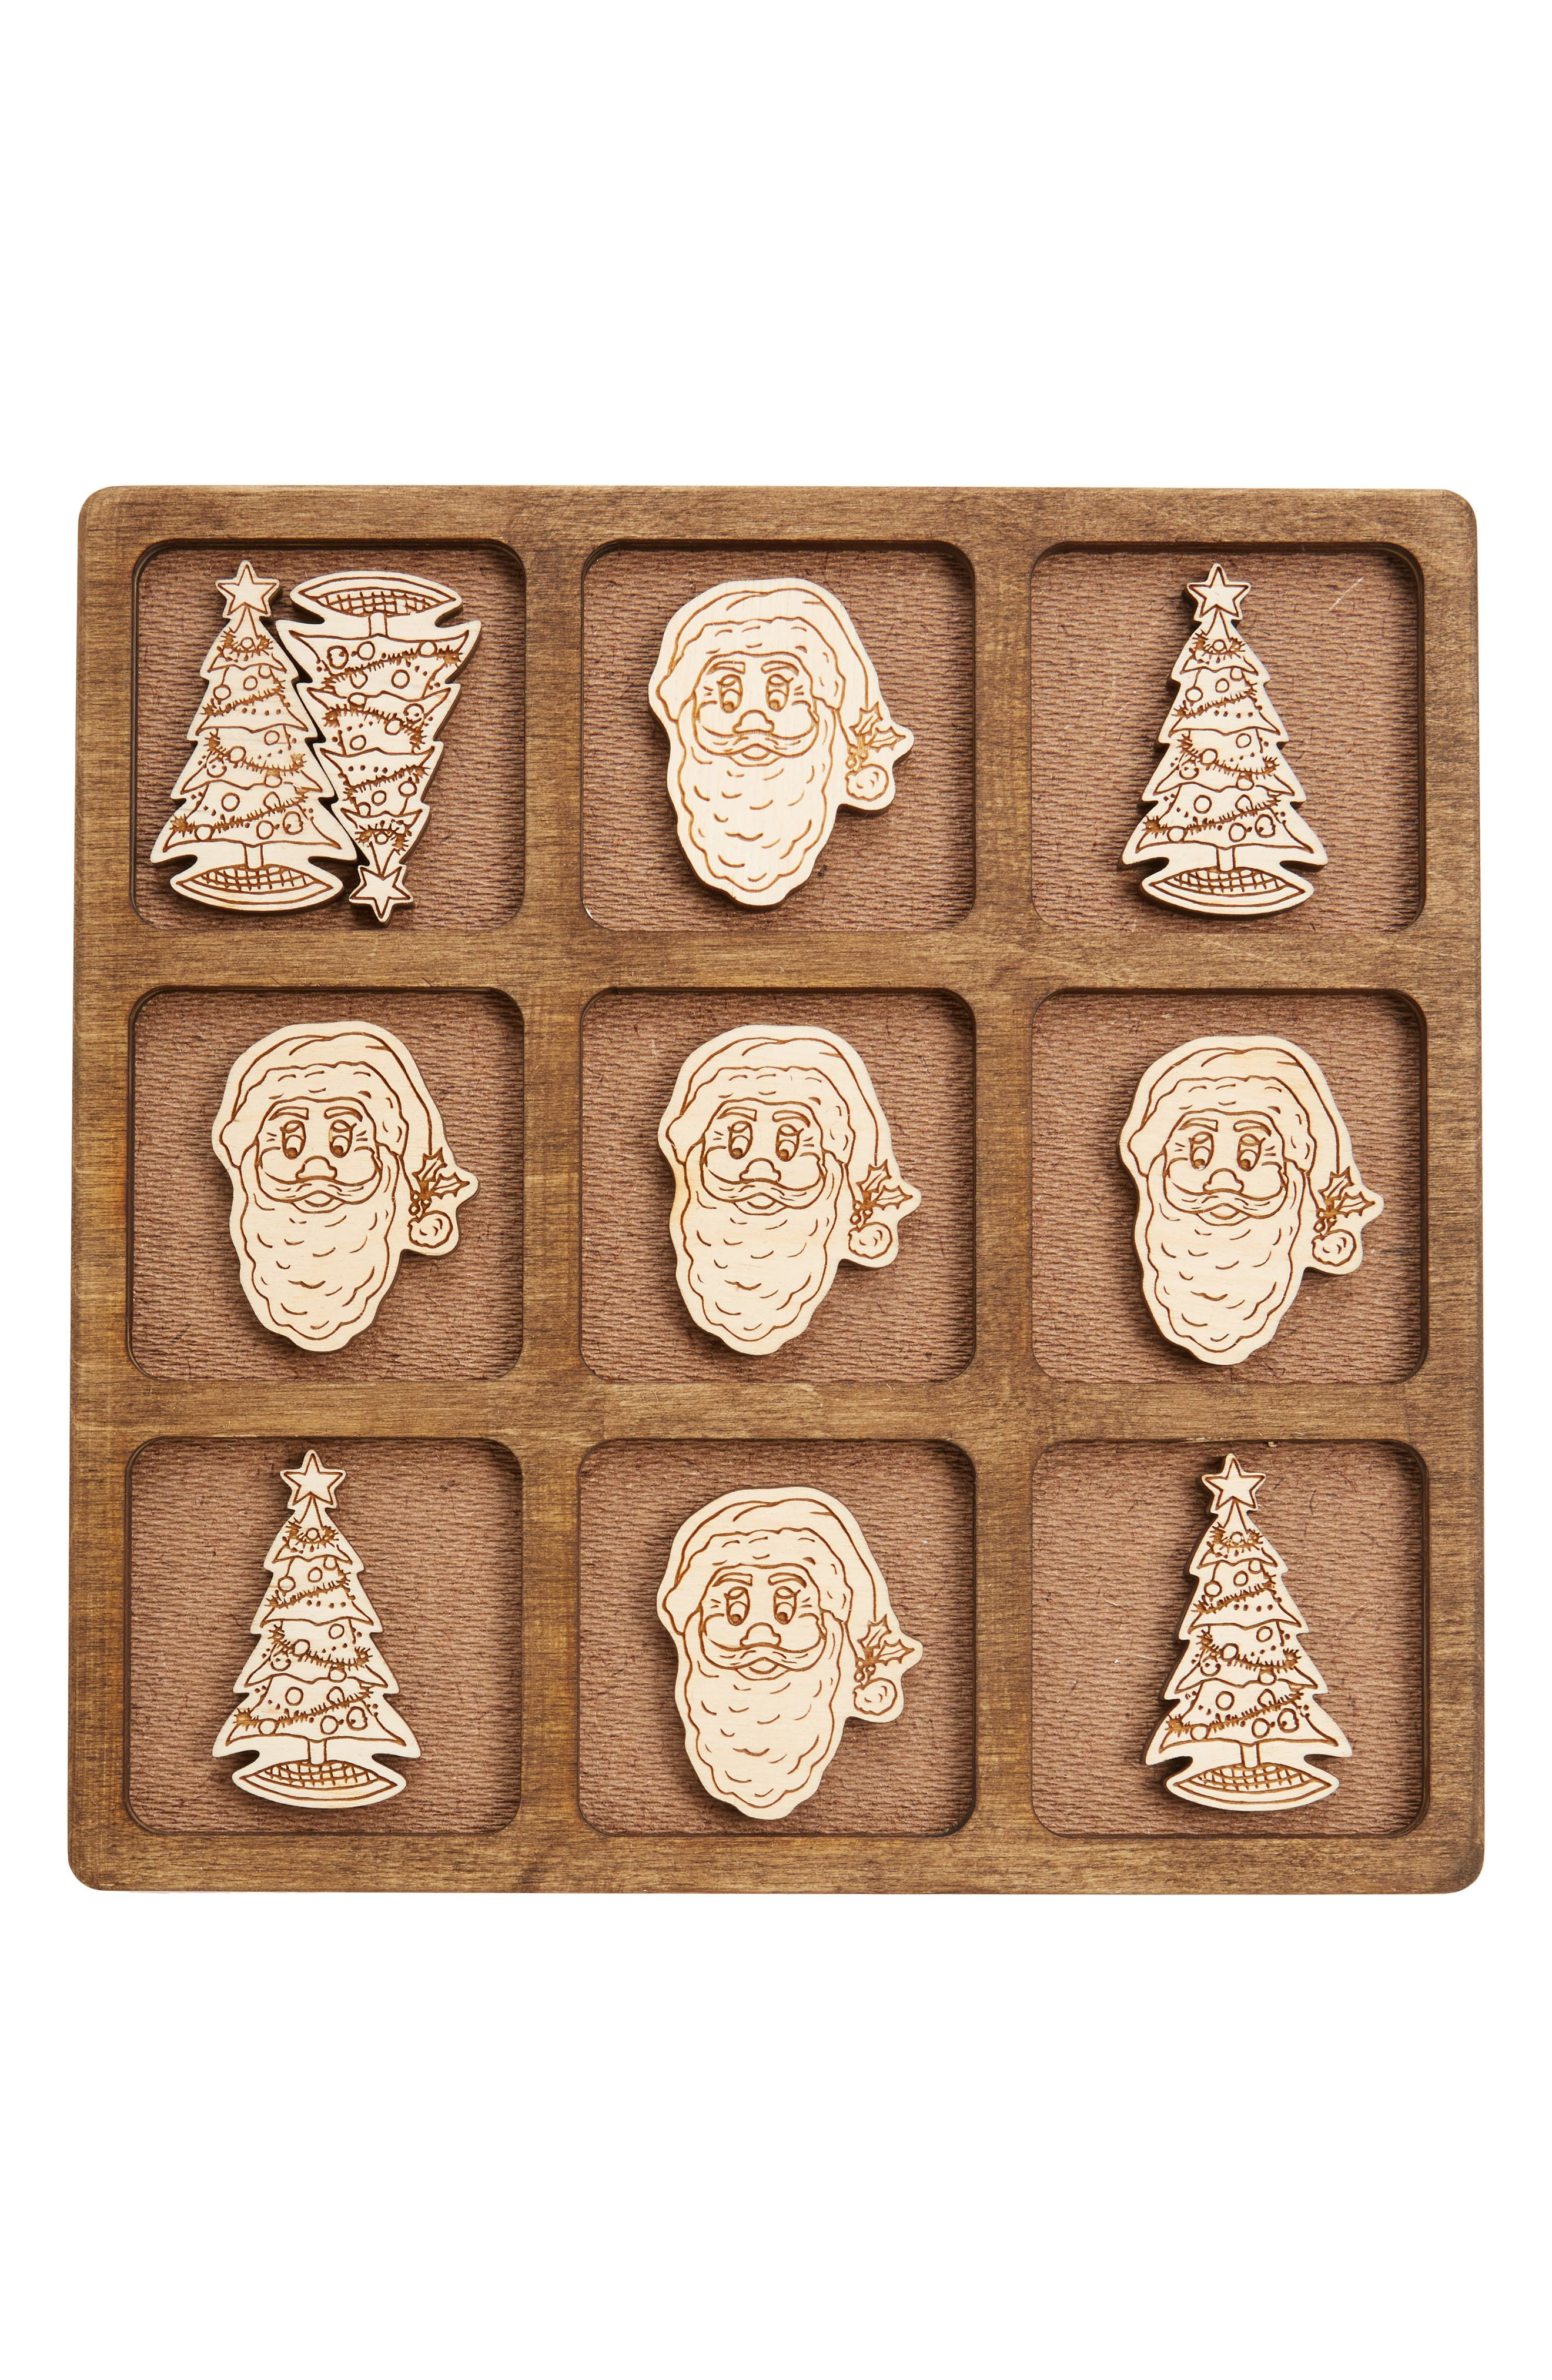 Toys 11-Piece Christmas Tic-Tac-Toe Game,                         Main,                         color, 250